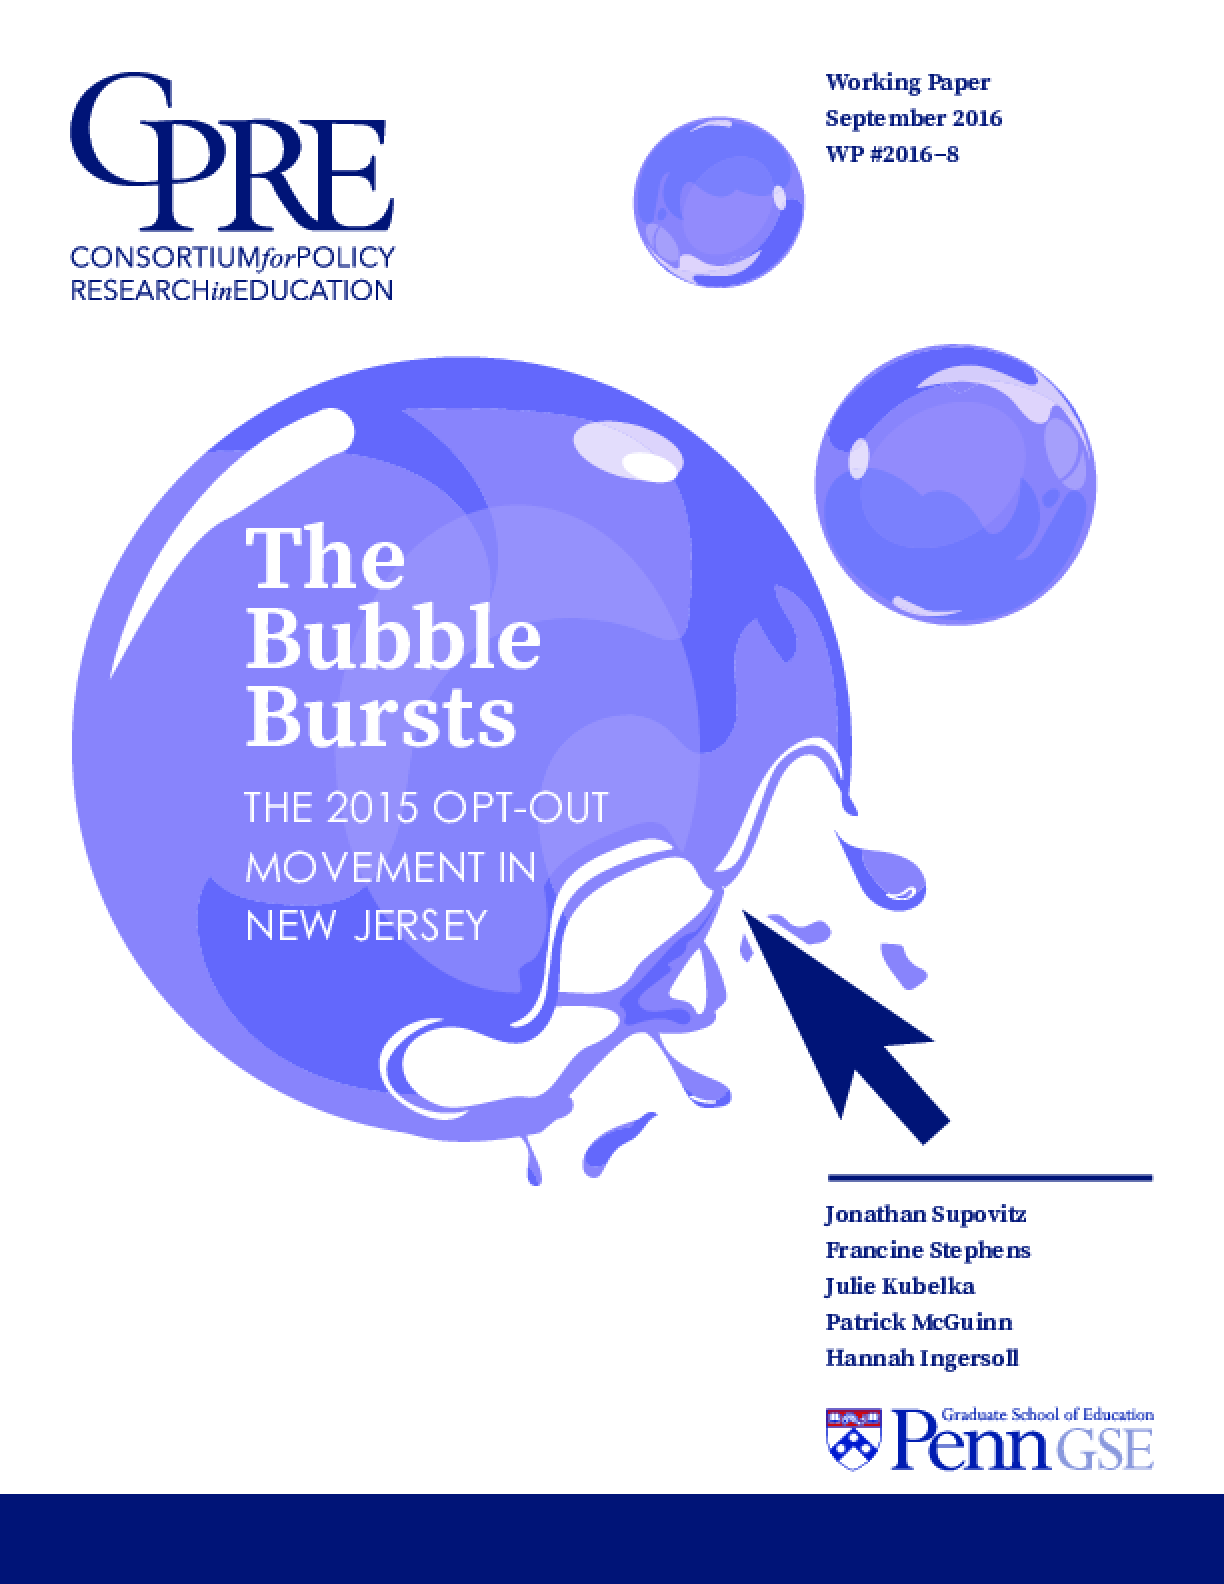 The Bubble Bursts: The 2015 Opt-Out Movement in New Jersey